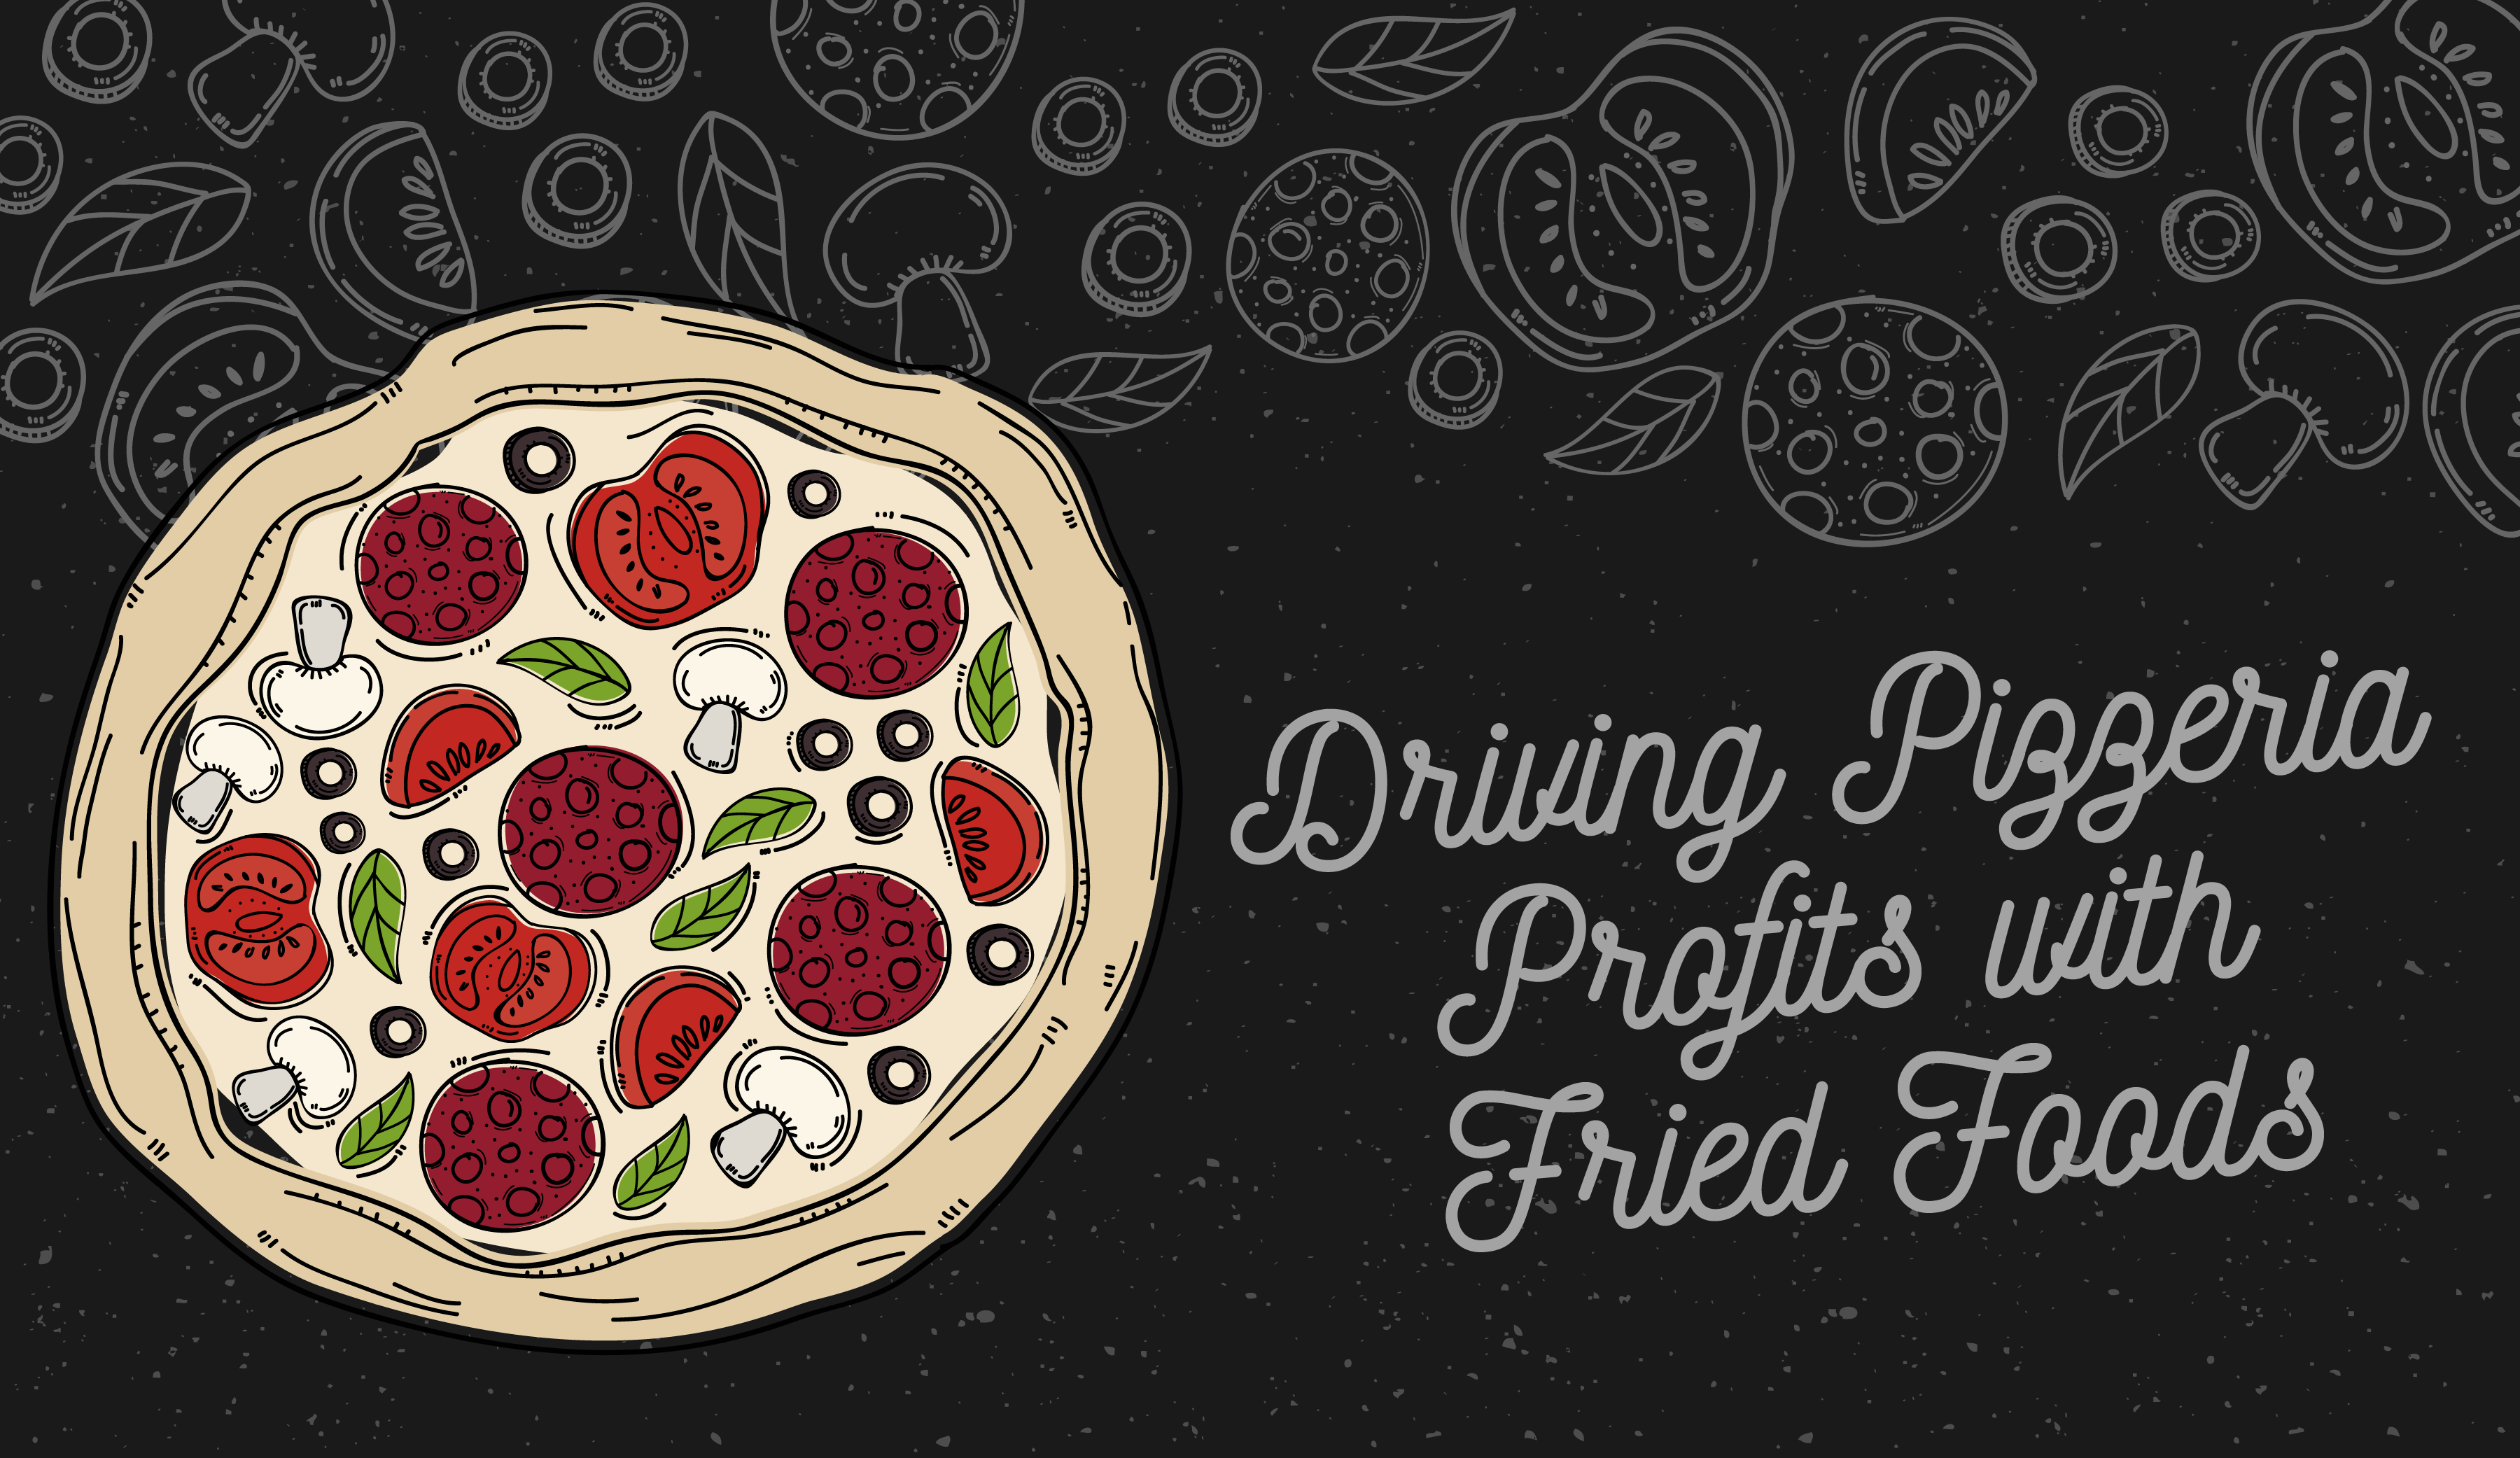 Driving Pizzeria Profits with Fried Foods-02.png